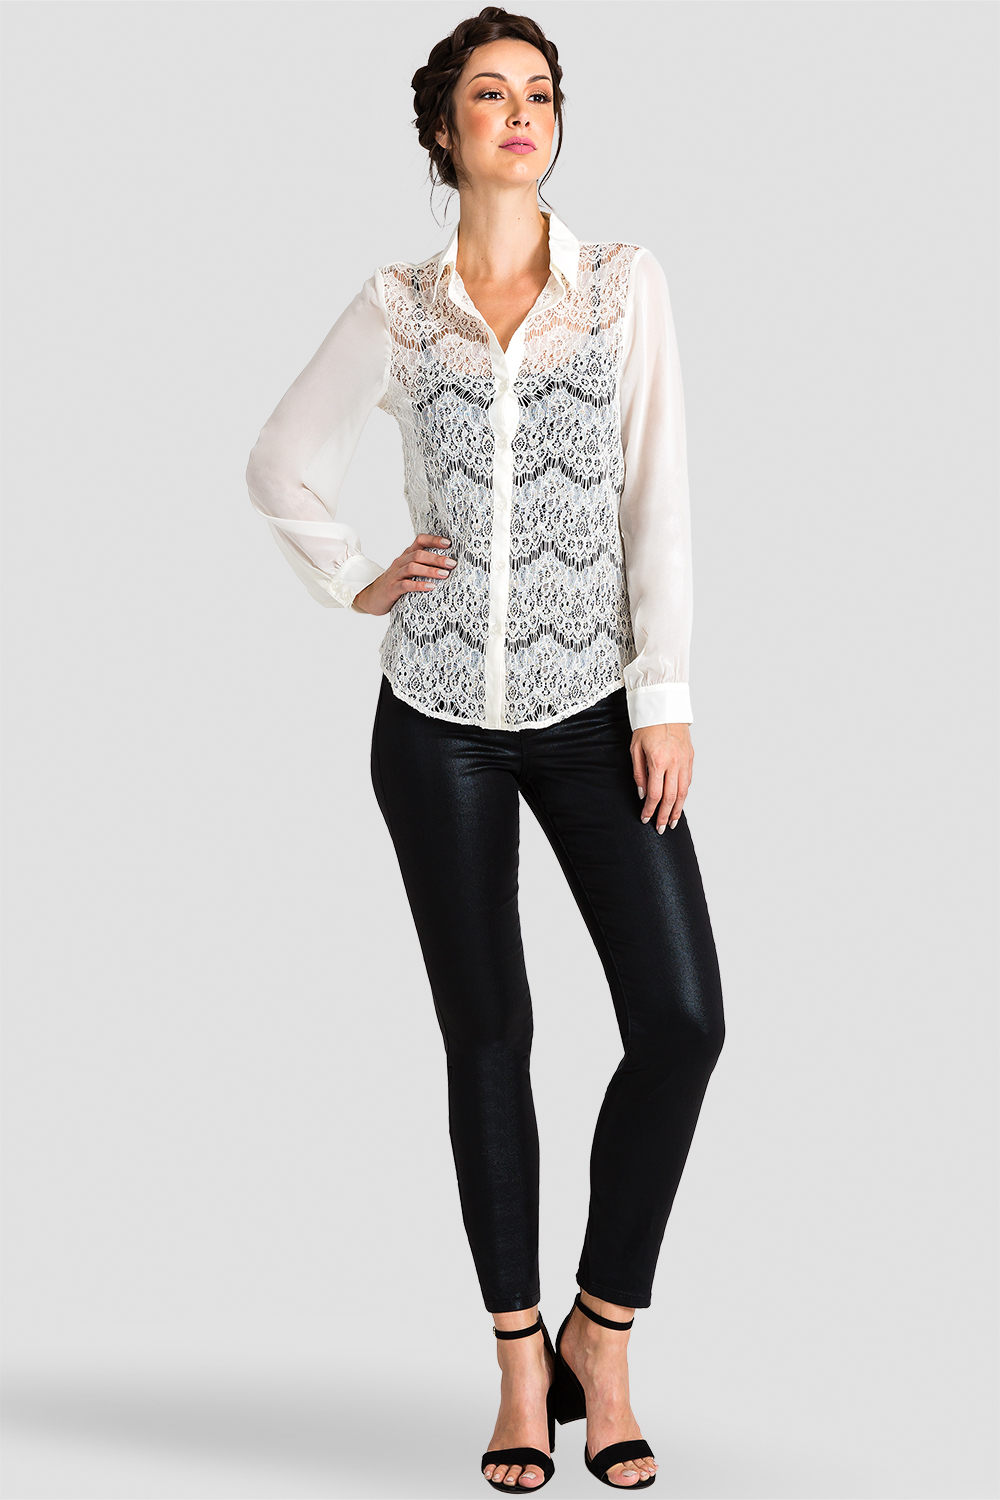 Ivory Lace Collared Top detail